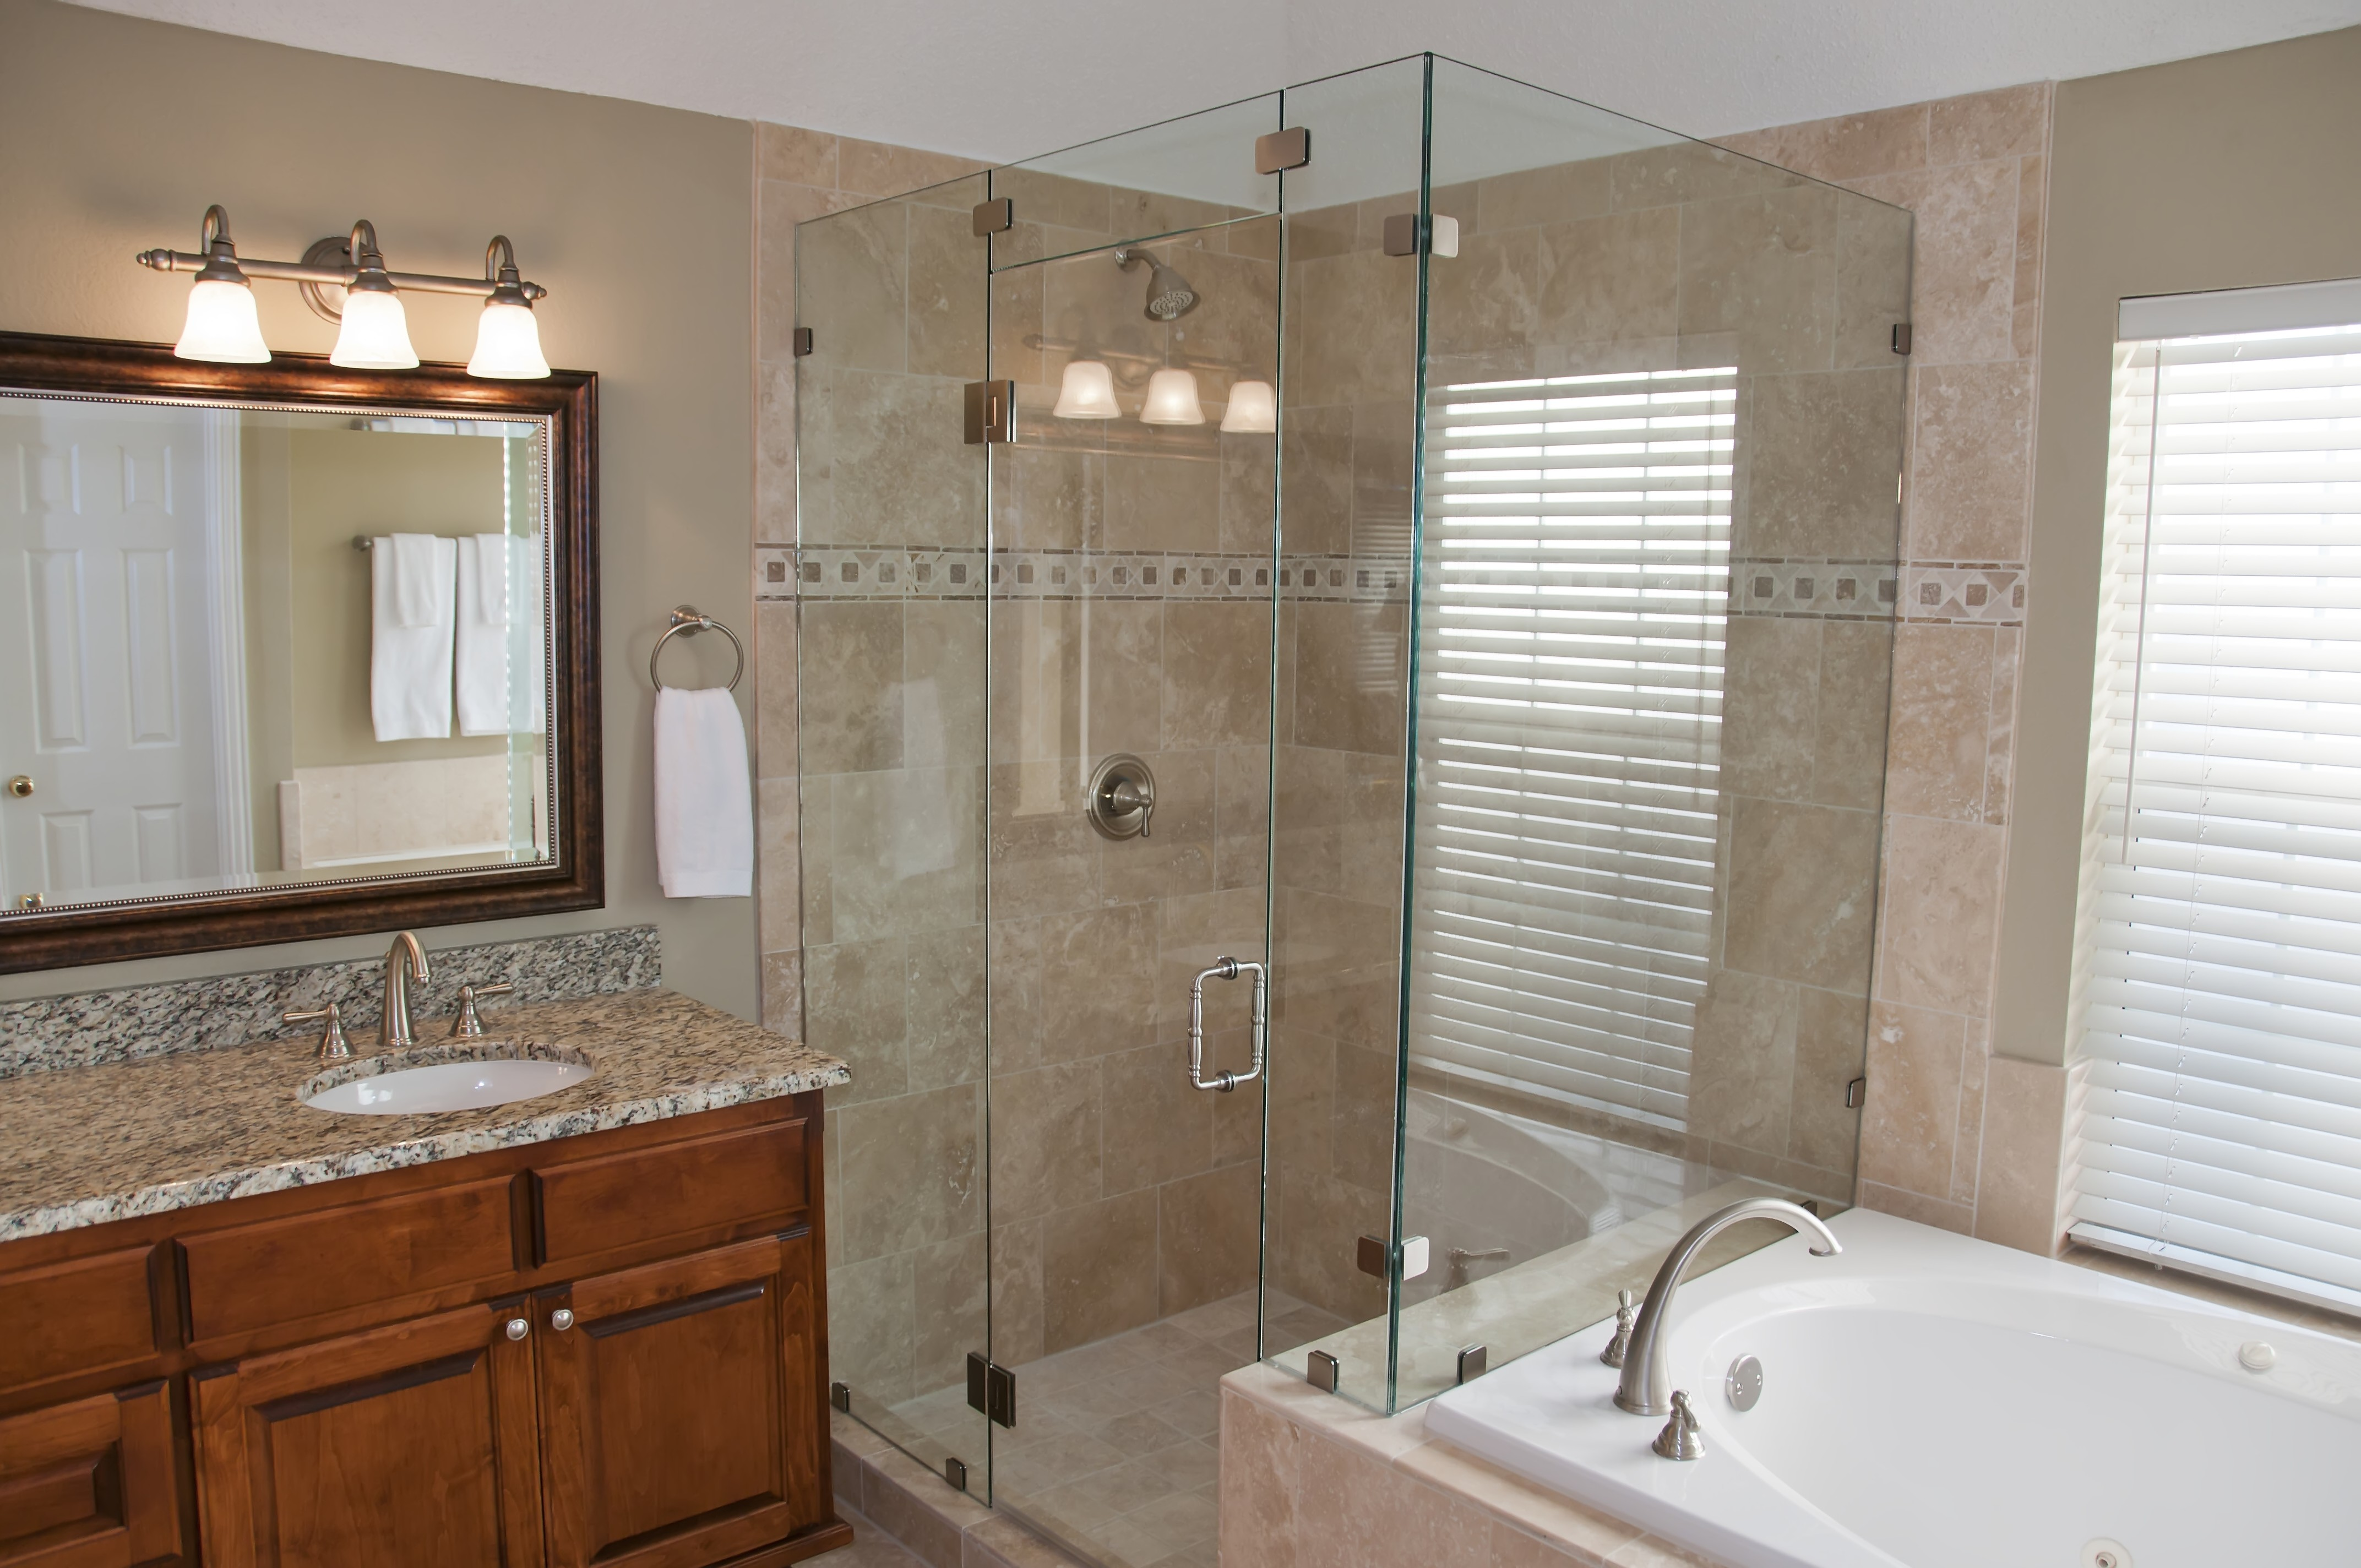 Bathroom Remodel in Plano TX DFW Improved